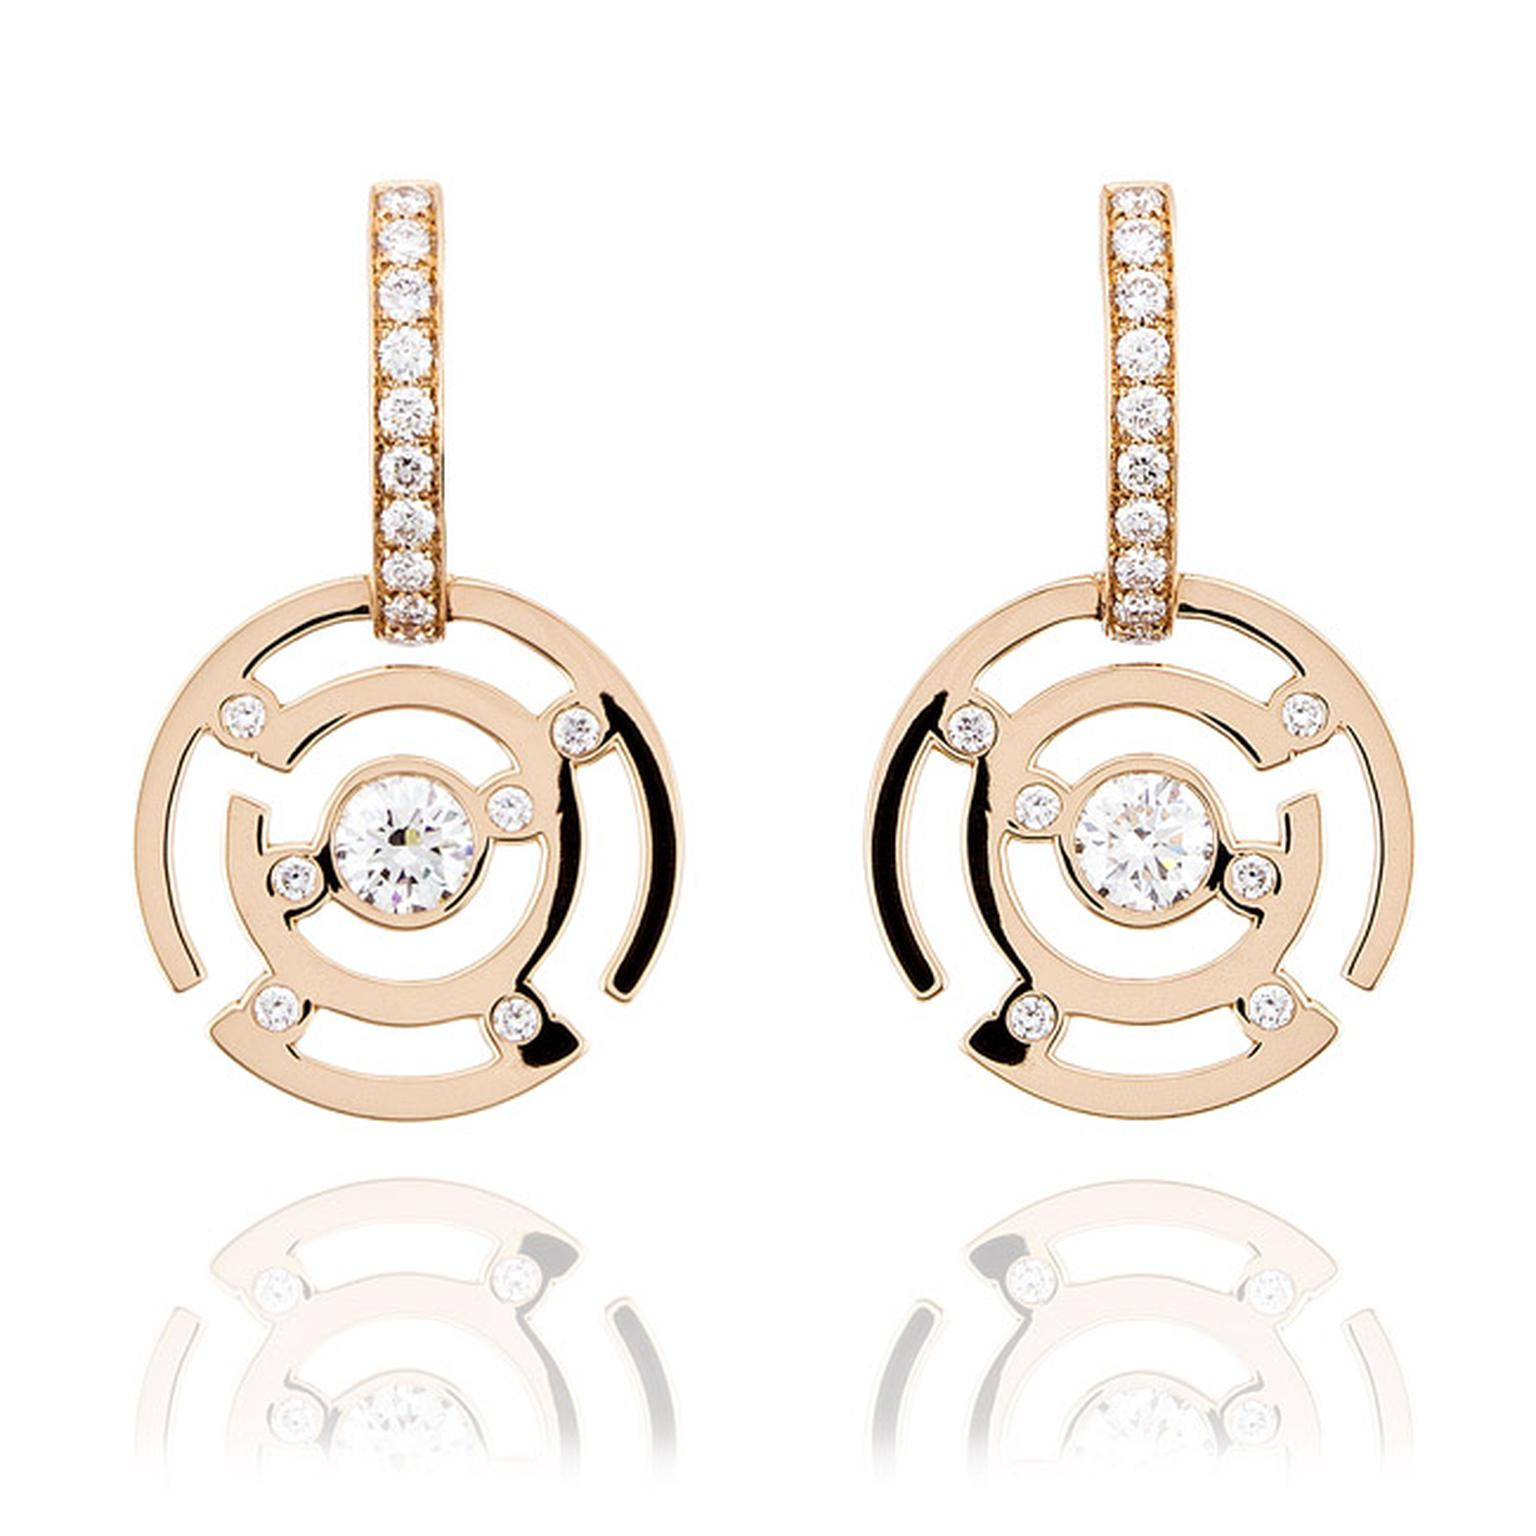 Boodles-Maze-RG-Earrings-Main